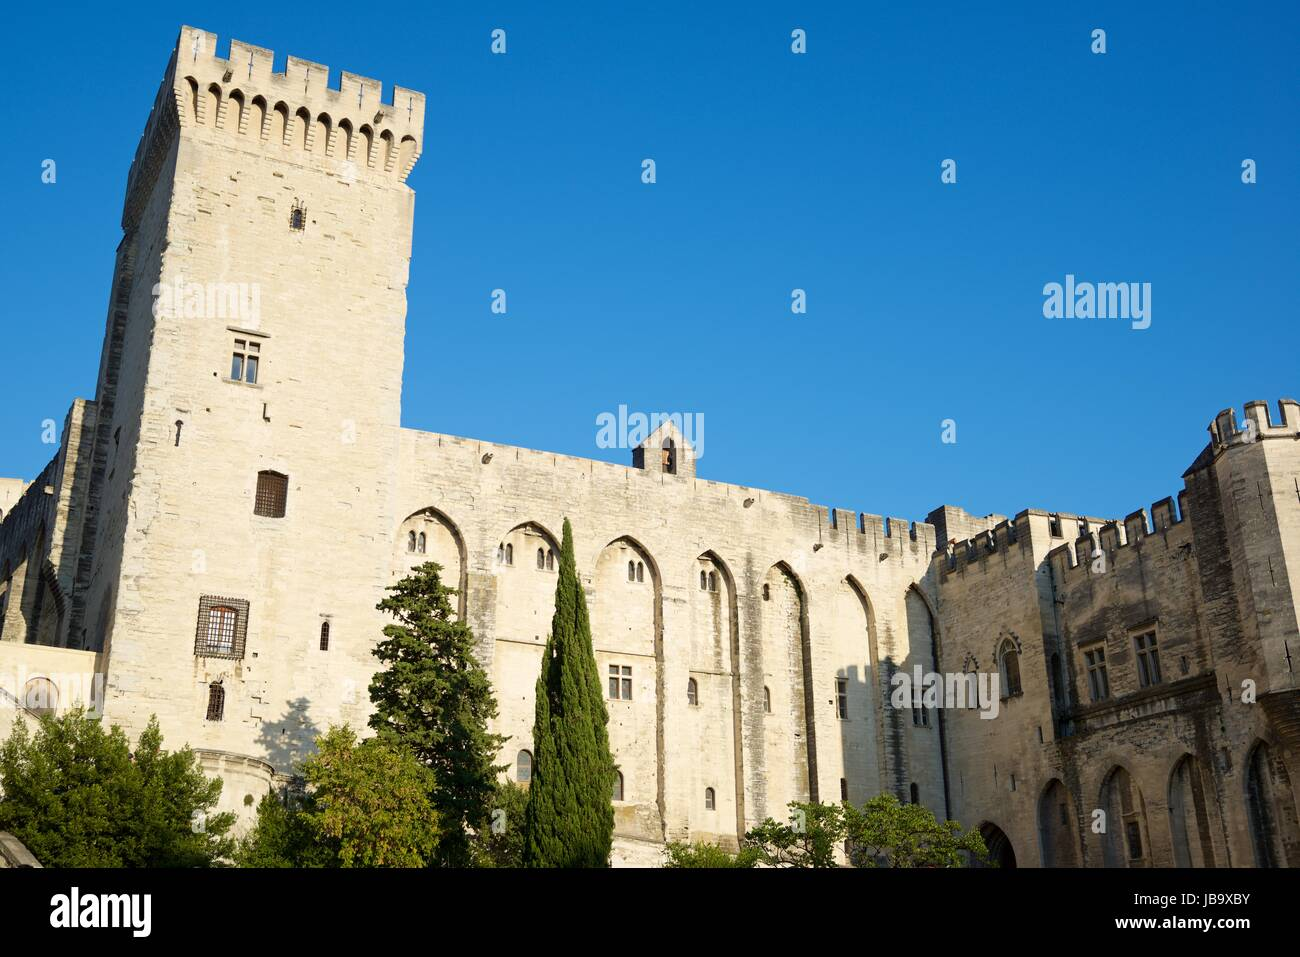 avignon view palace popes in stockfotos avignon view palace popes in bilder alamy. Black Bedroom Furniture Sets. Home Design Ideas